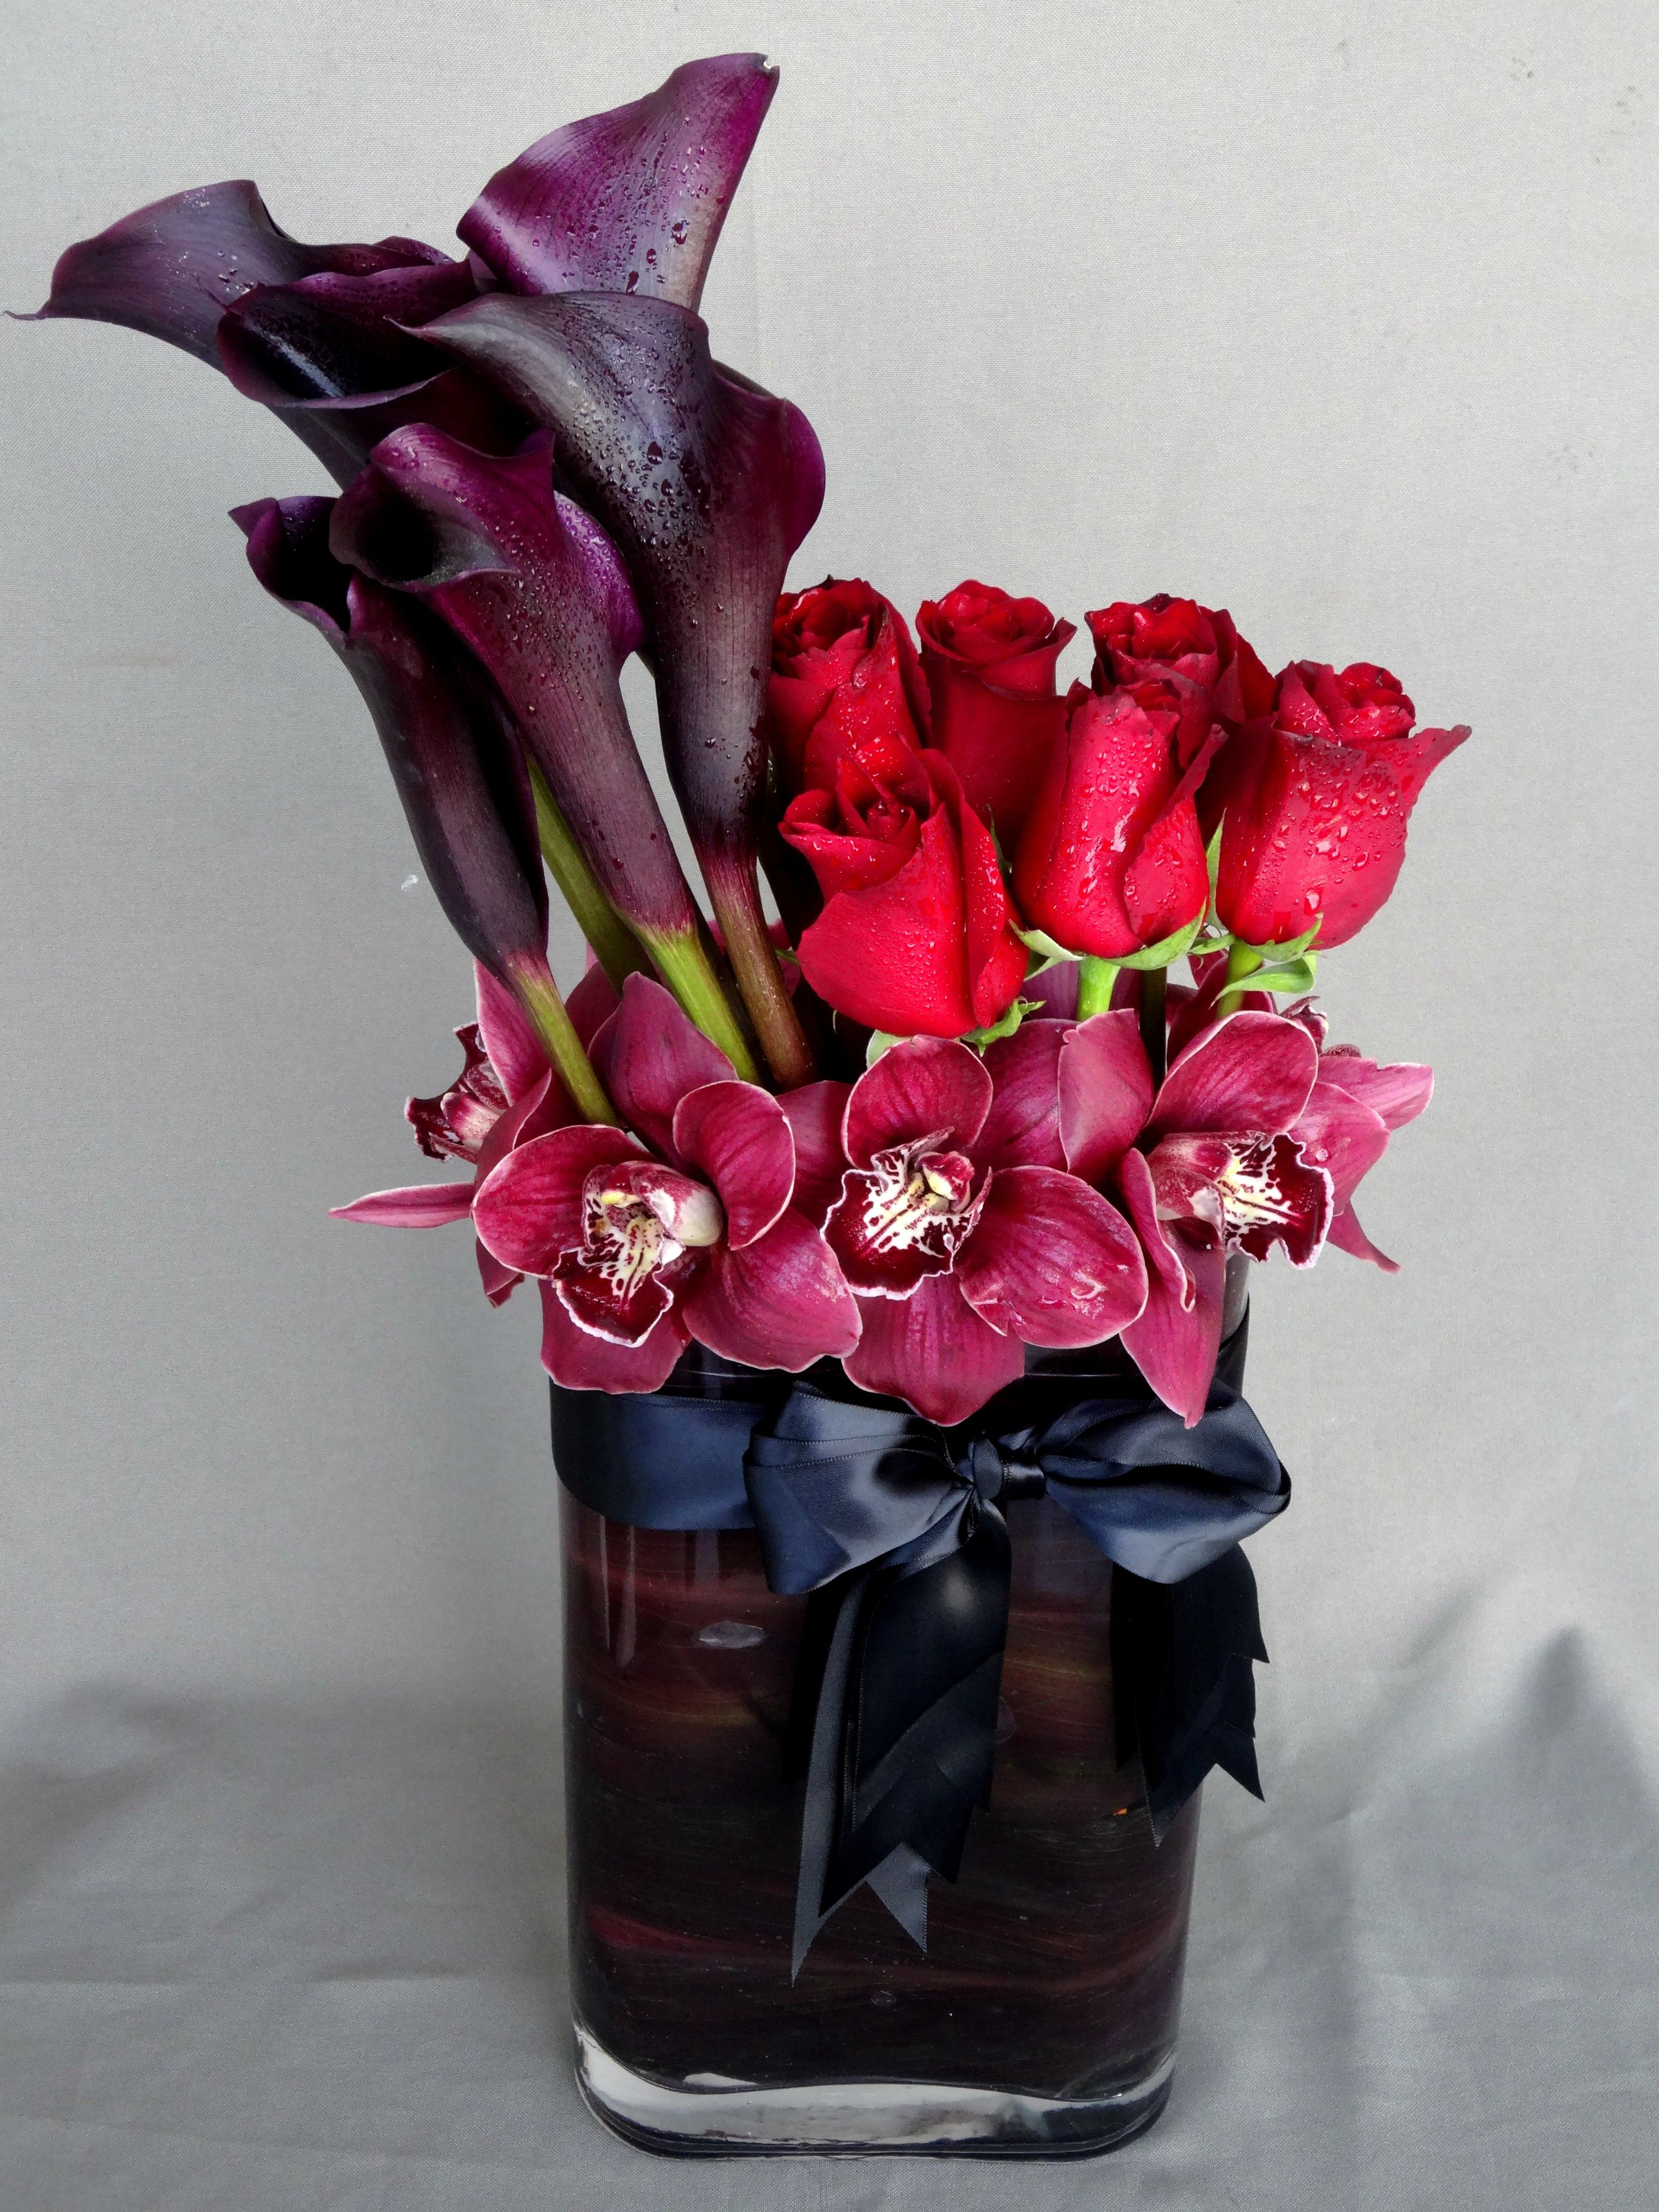 Send the calla lilies roses and orchids bouquet of flowers from send the calla lilies roses and orchids bouquet of flowers from floral design by daves flowers in los angeles ca local fresh flower delivery directly izmirmasajfo